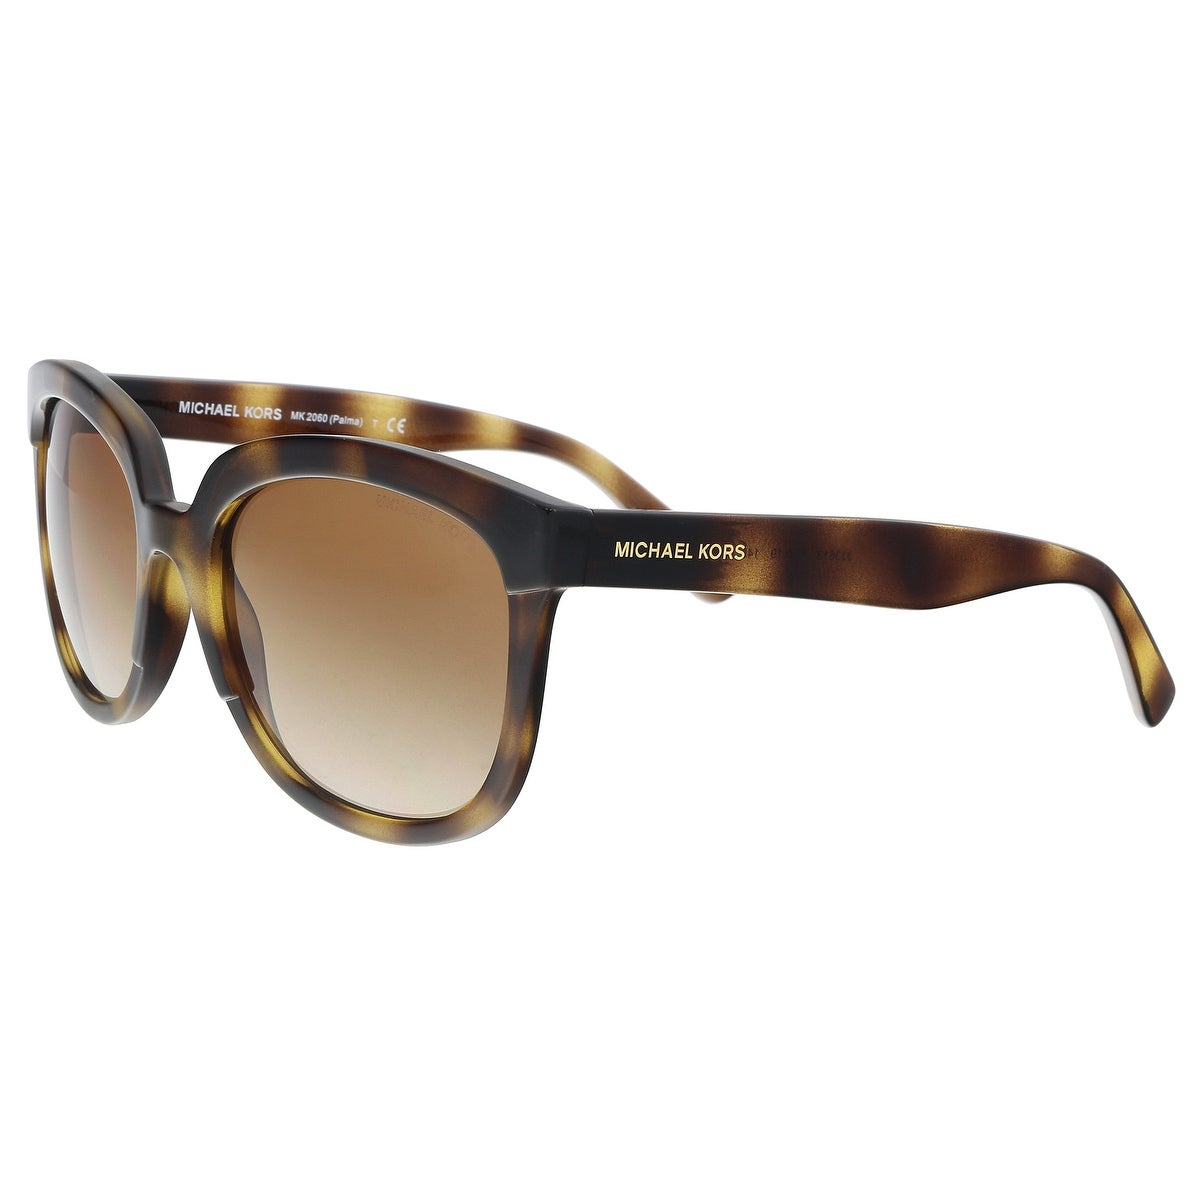 f8afbf366100 Shop Michael Kors MK2060 333613 Dark Tortoise Square Sunglasses - 55 ...